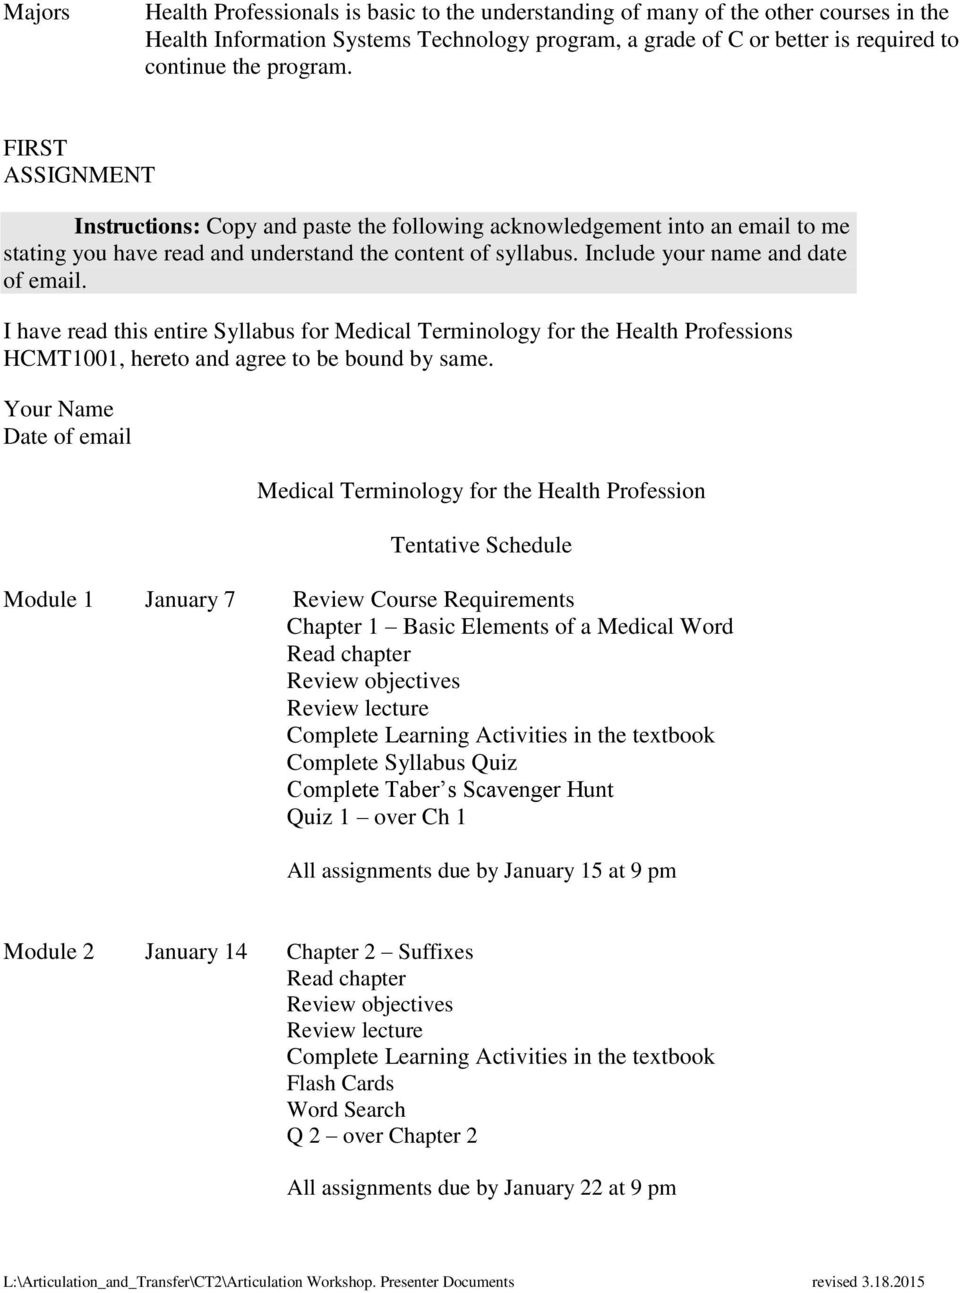 I have read this entire Syllabus for Medical Terminology for the Health Professions HCMT1001, hereto and agree to be bound by same.